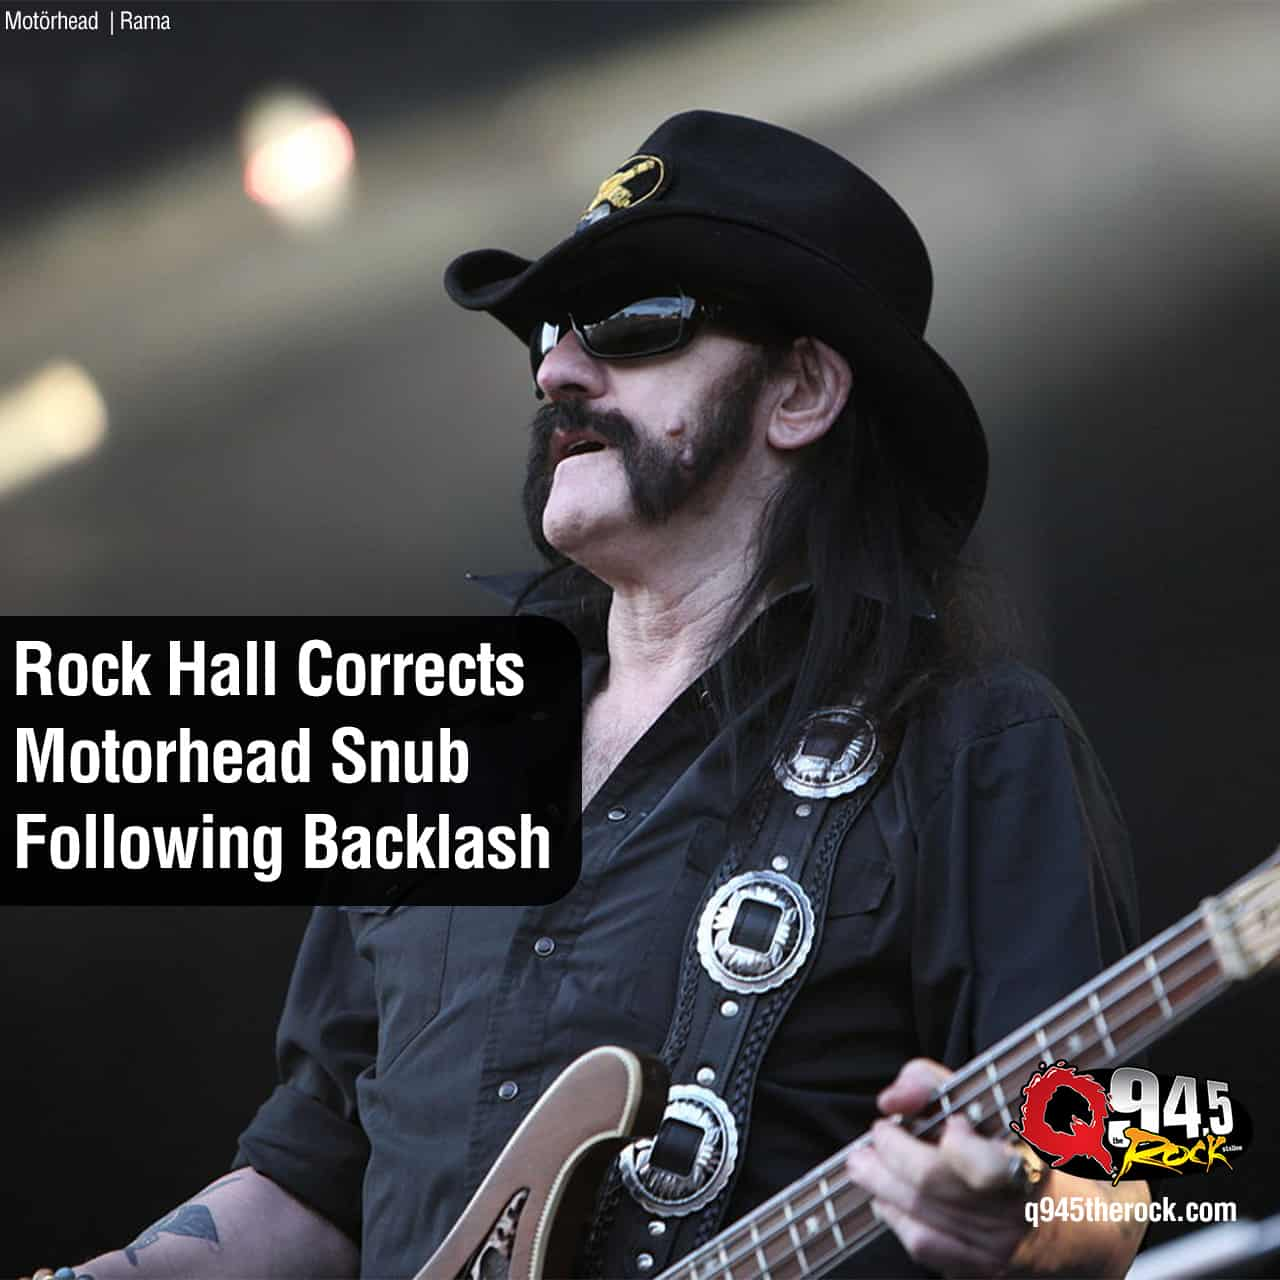 Rock Hall Corrects Motorhead Snub Following Backlash